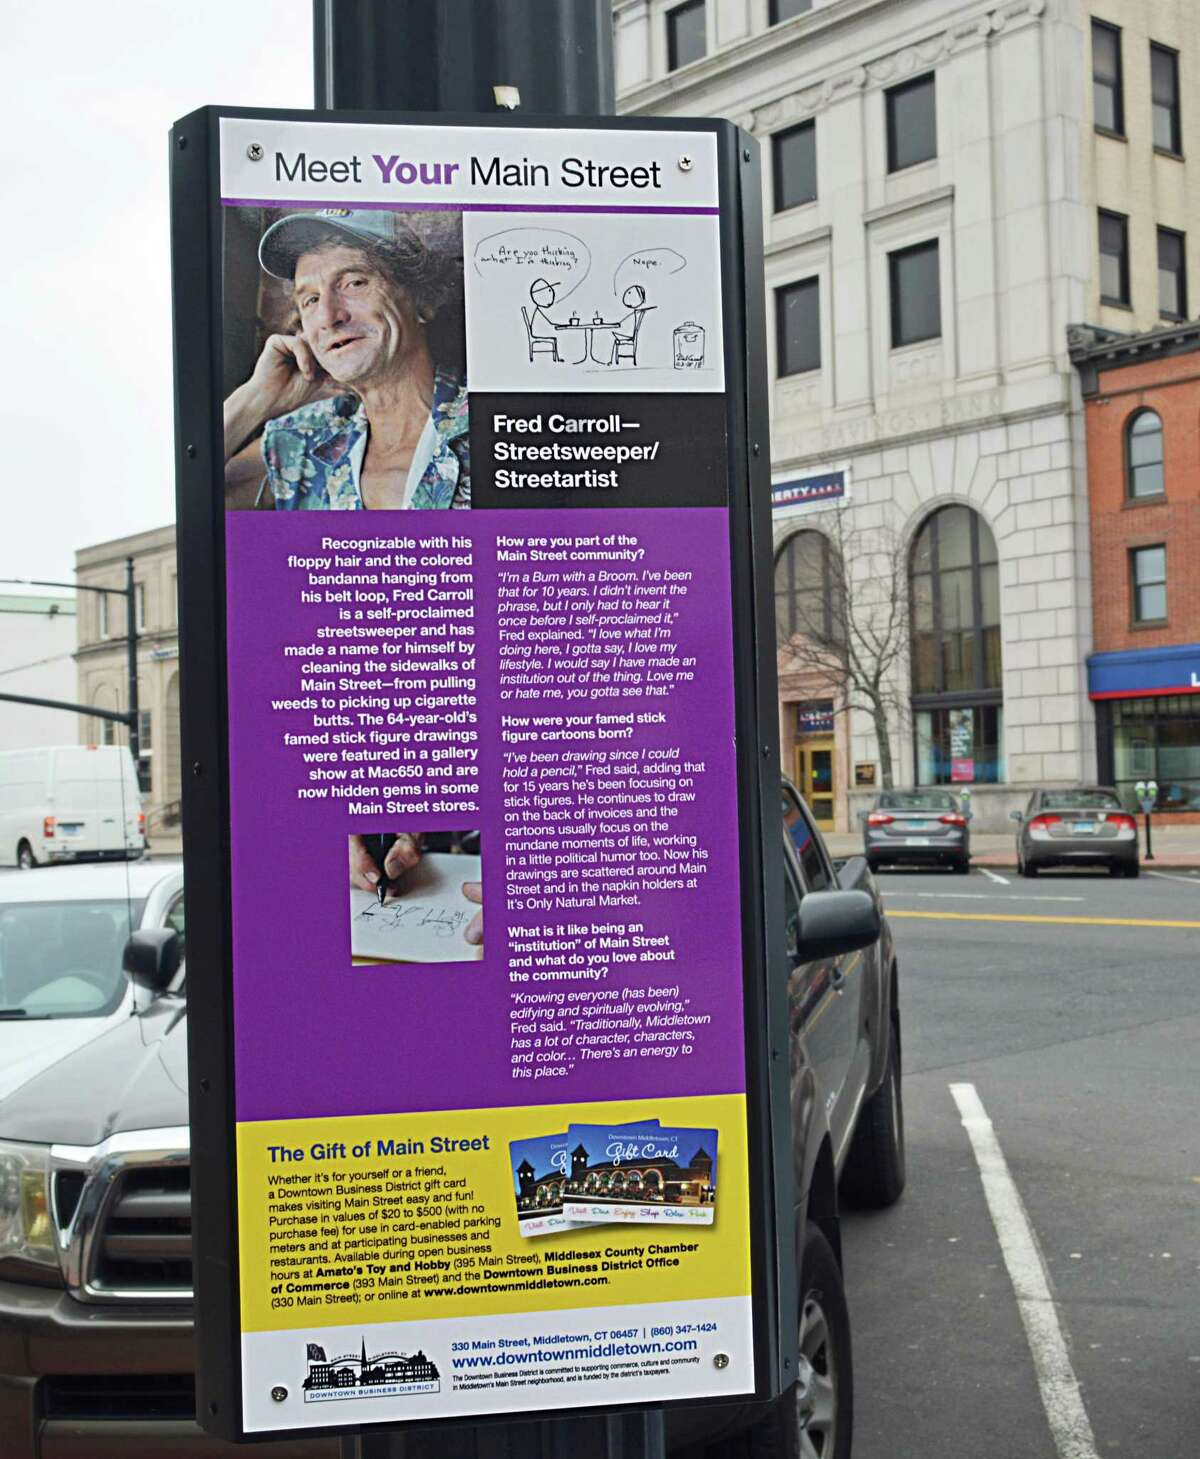 Middletown's Downtown Business District has way-finding signs along Main Street, each of which includes a map of the area and short profile of a business person or short stories about familiar faces.